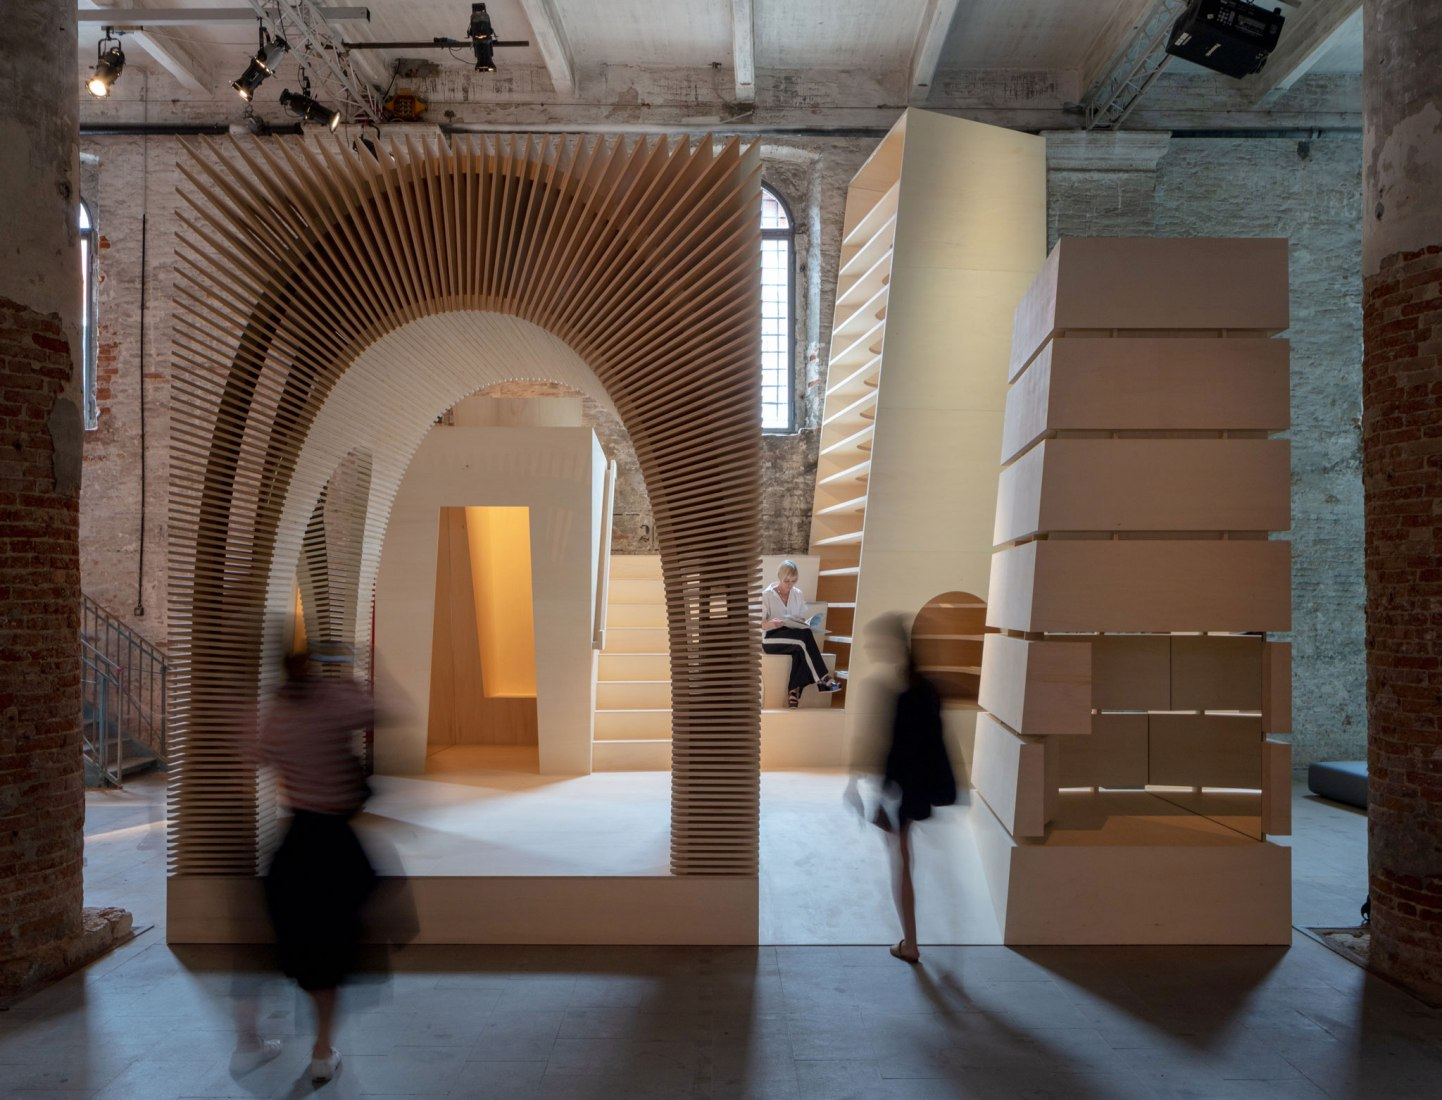 'ReCasting' by Alison Brooks Architects at the Biennale Architettura di Venezia 2018. Photograph by Luke Hayes